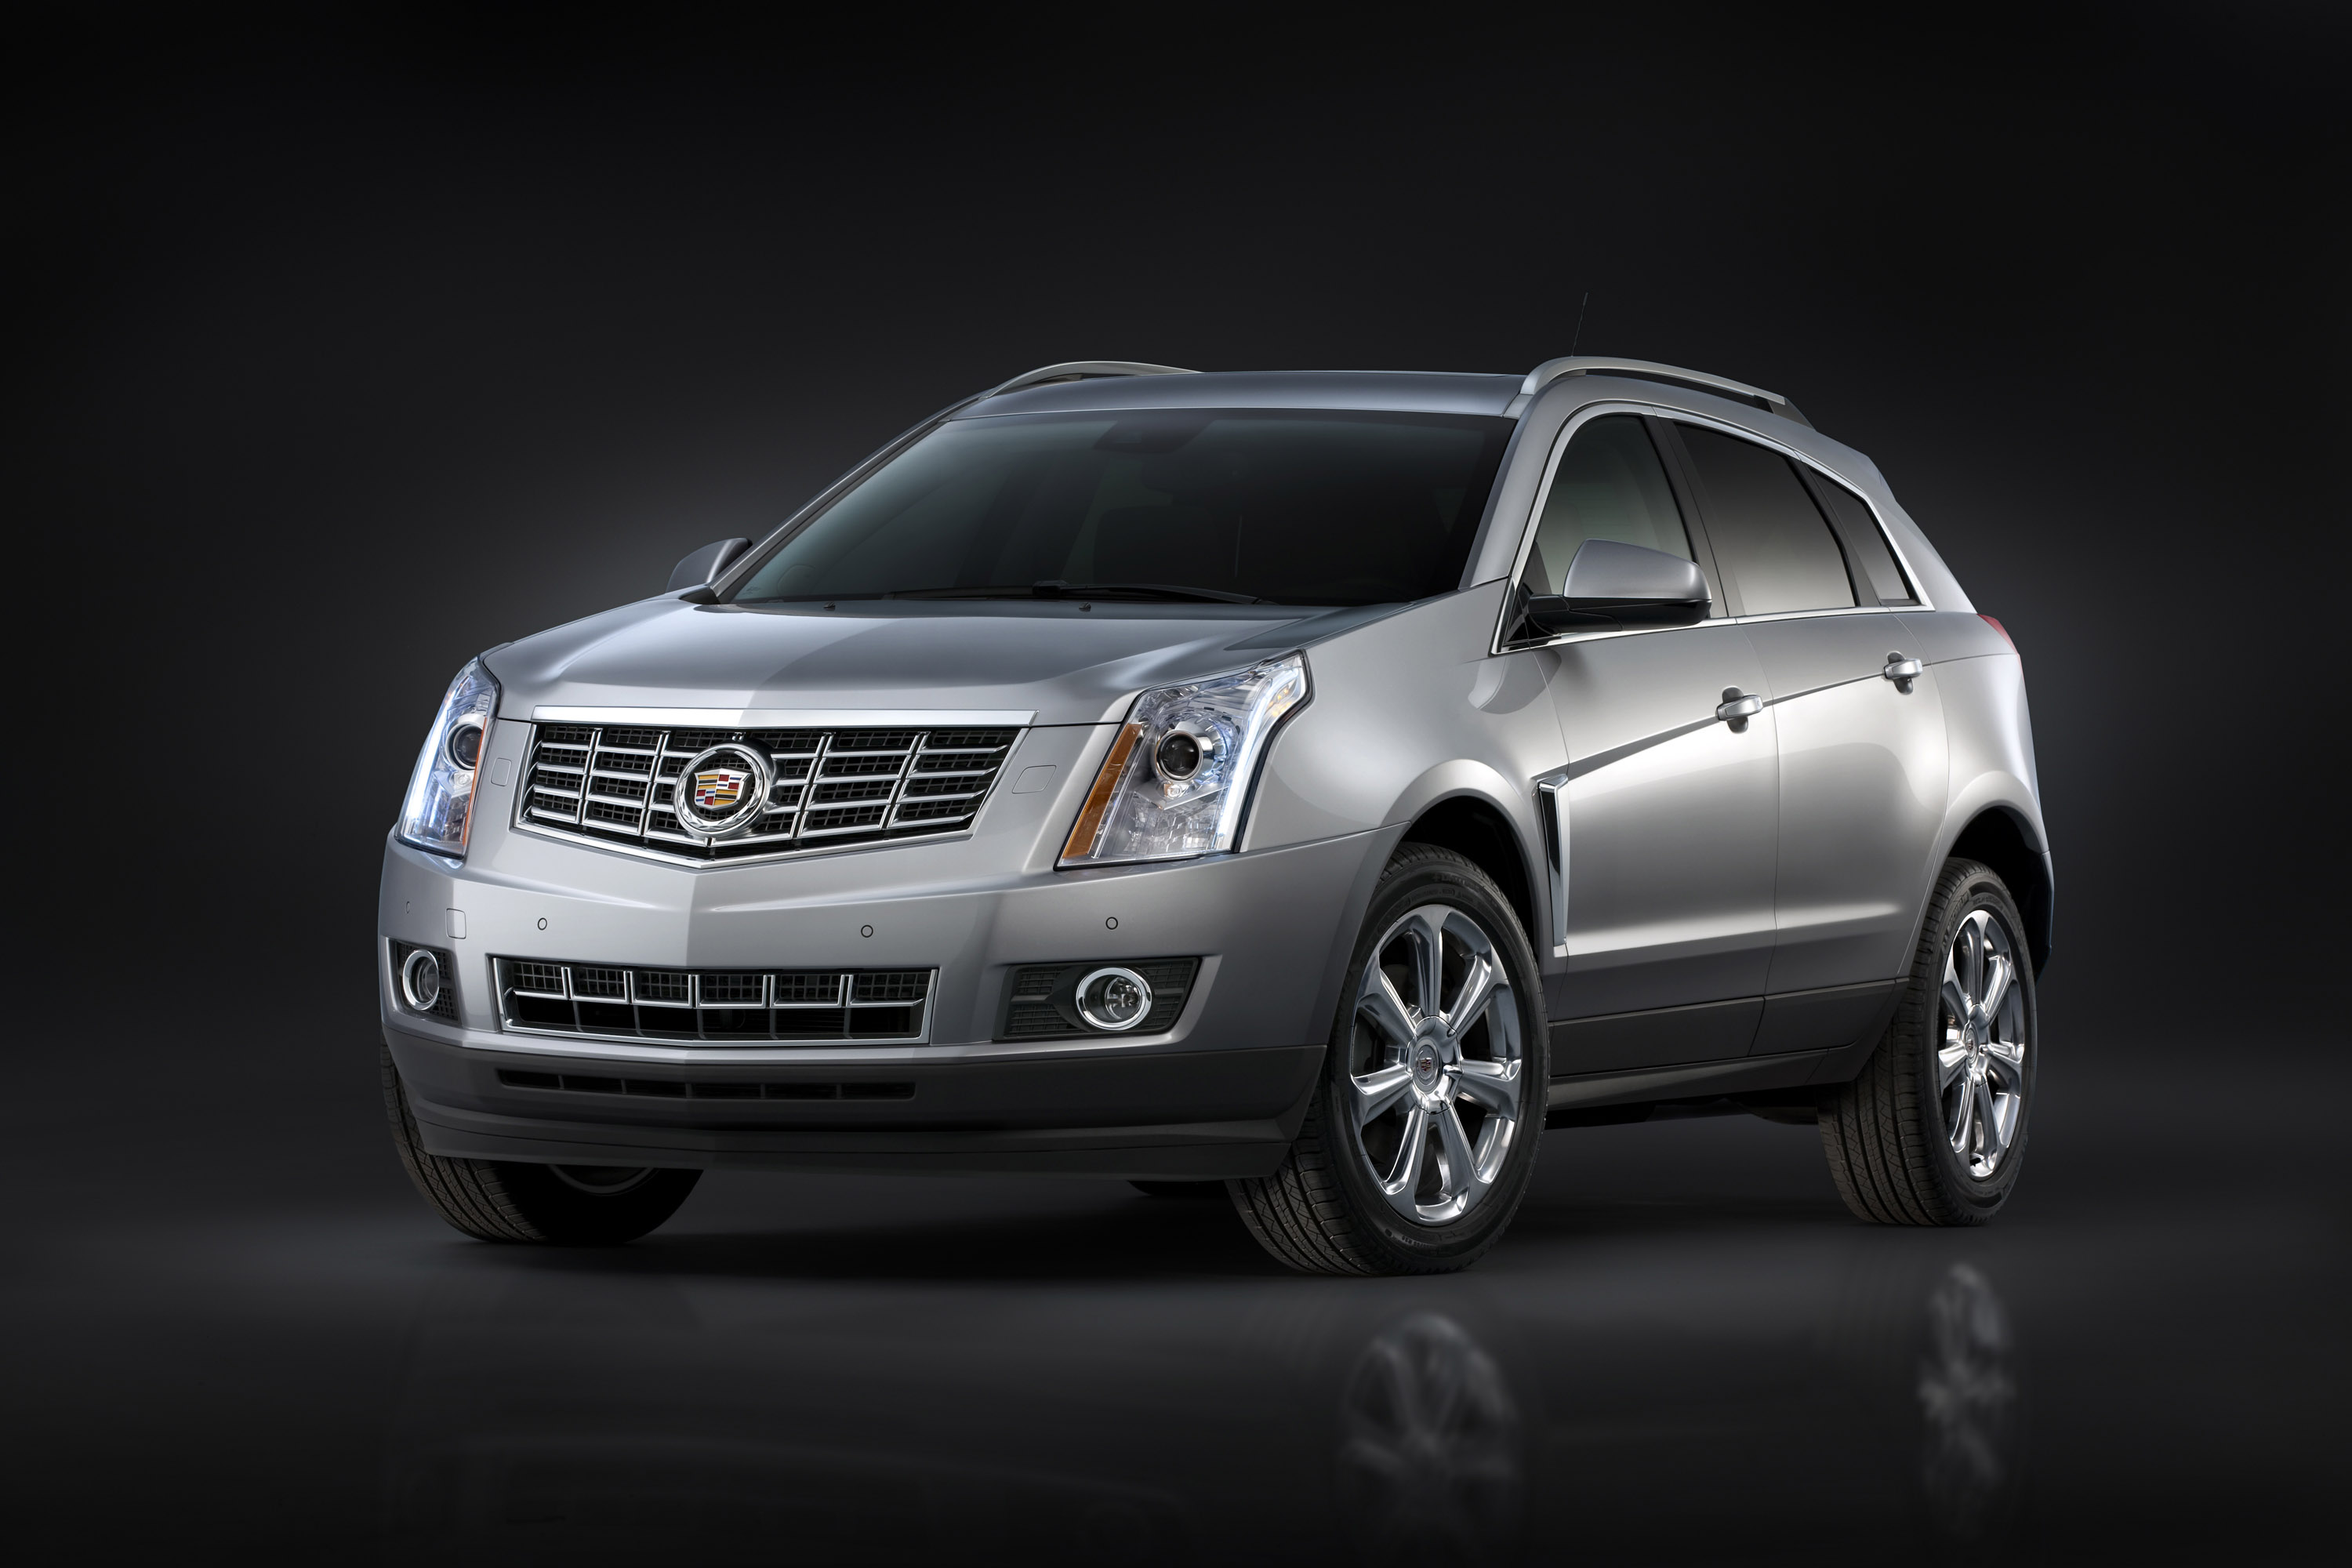 collection hill veh awd in cadillac sc luxury srx rock suv